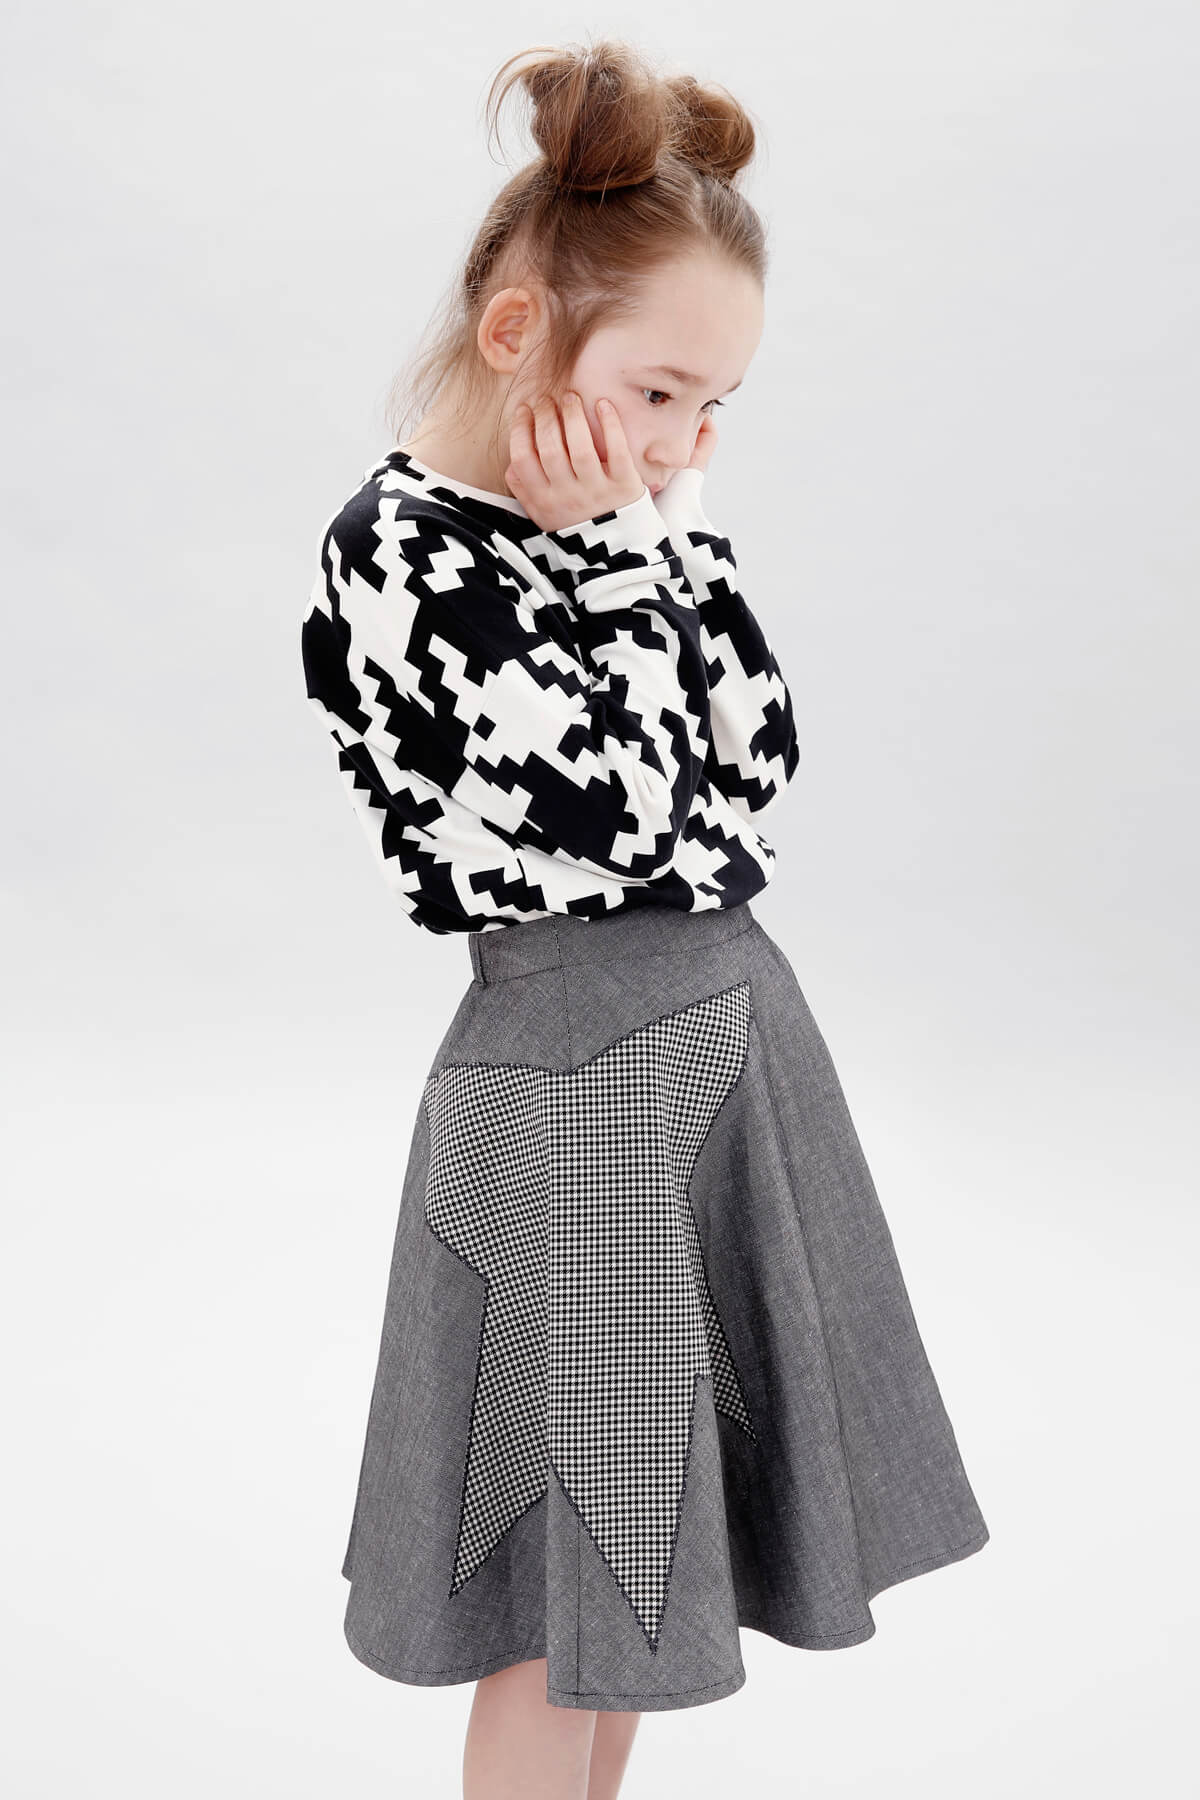 space invaders cropped sweater blackstar midi skirt